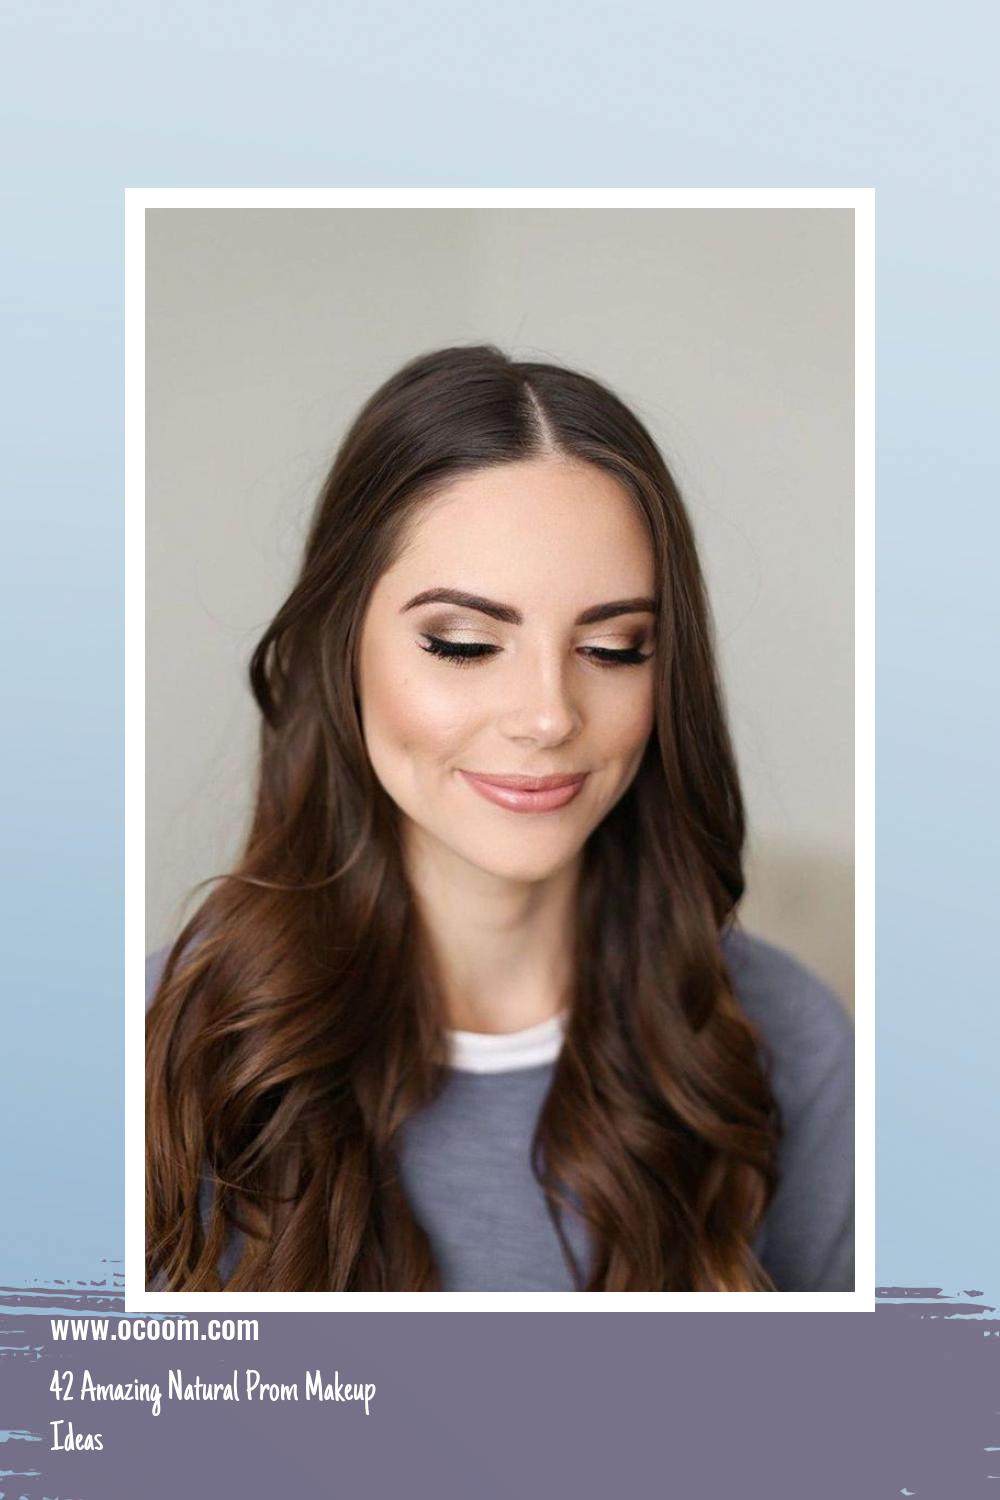 42 Amazing Natural Prom Makeup Ideas 23